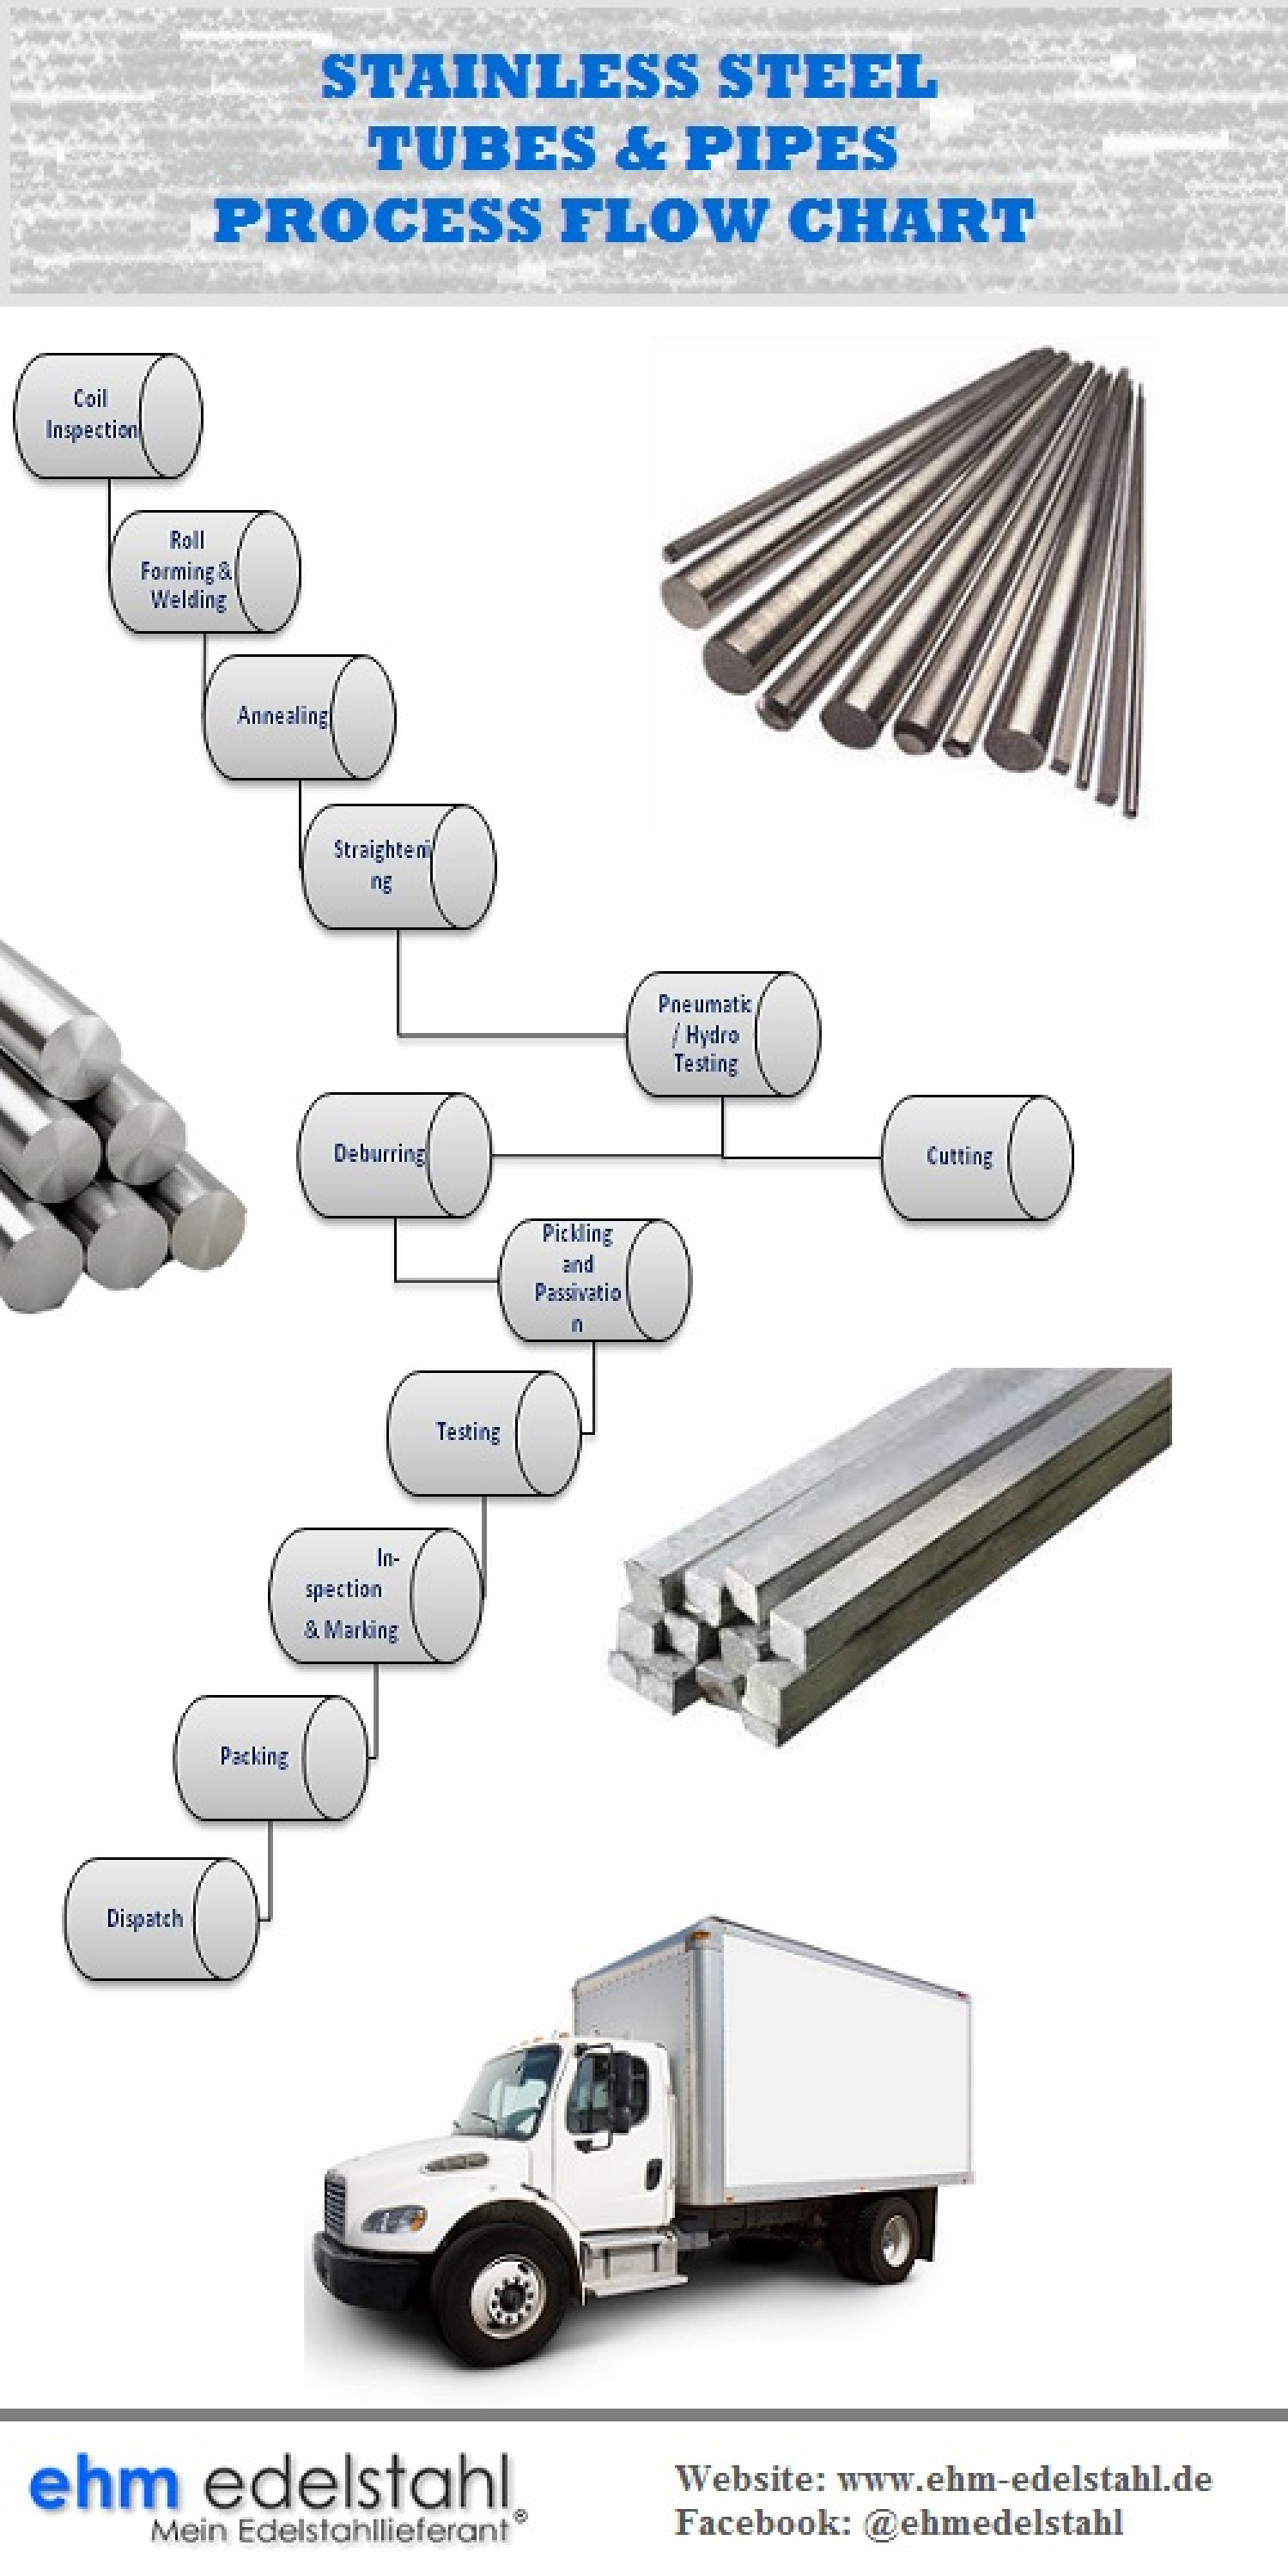 Process flow chart of Stainless steel tubes & pipes Infographic